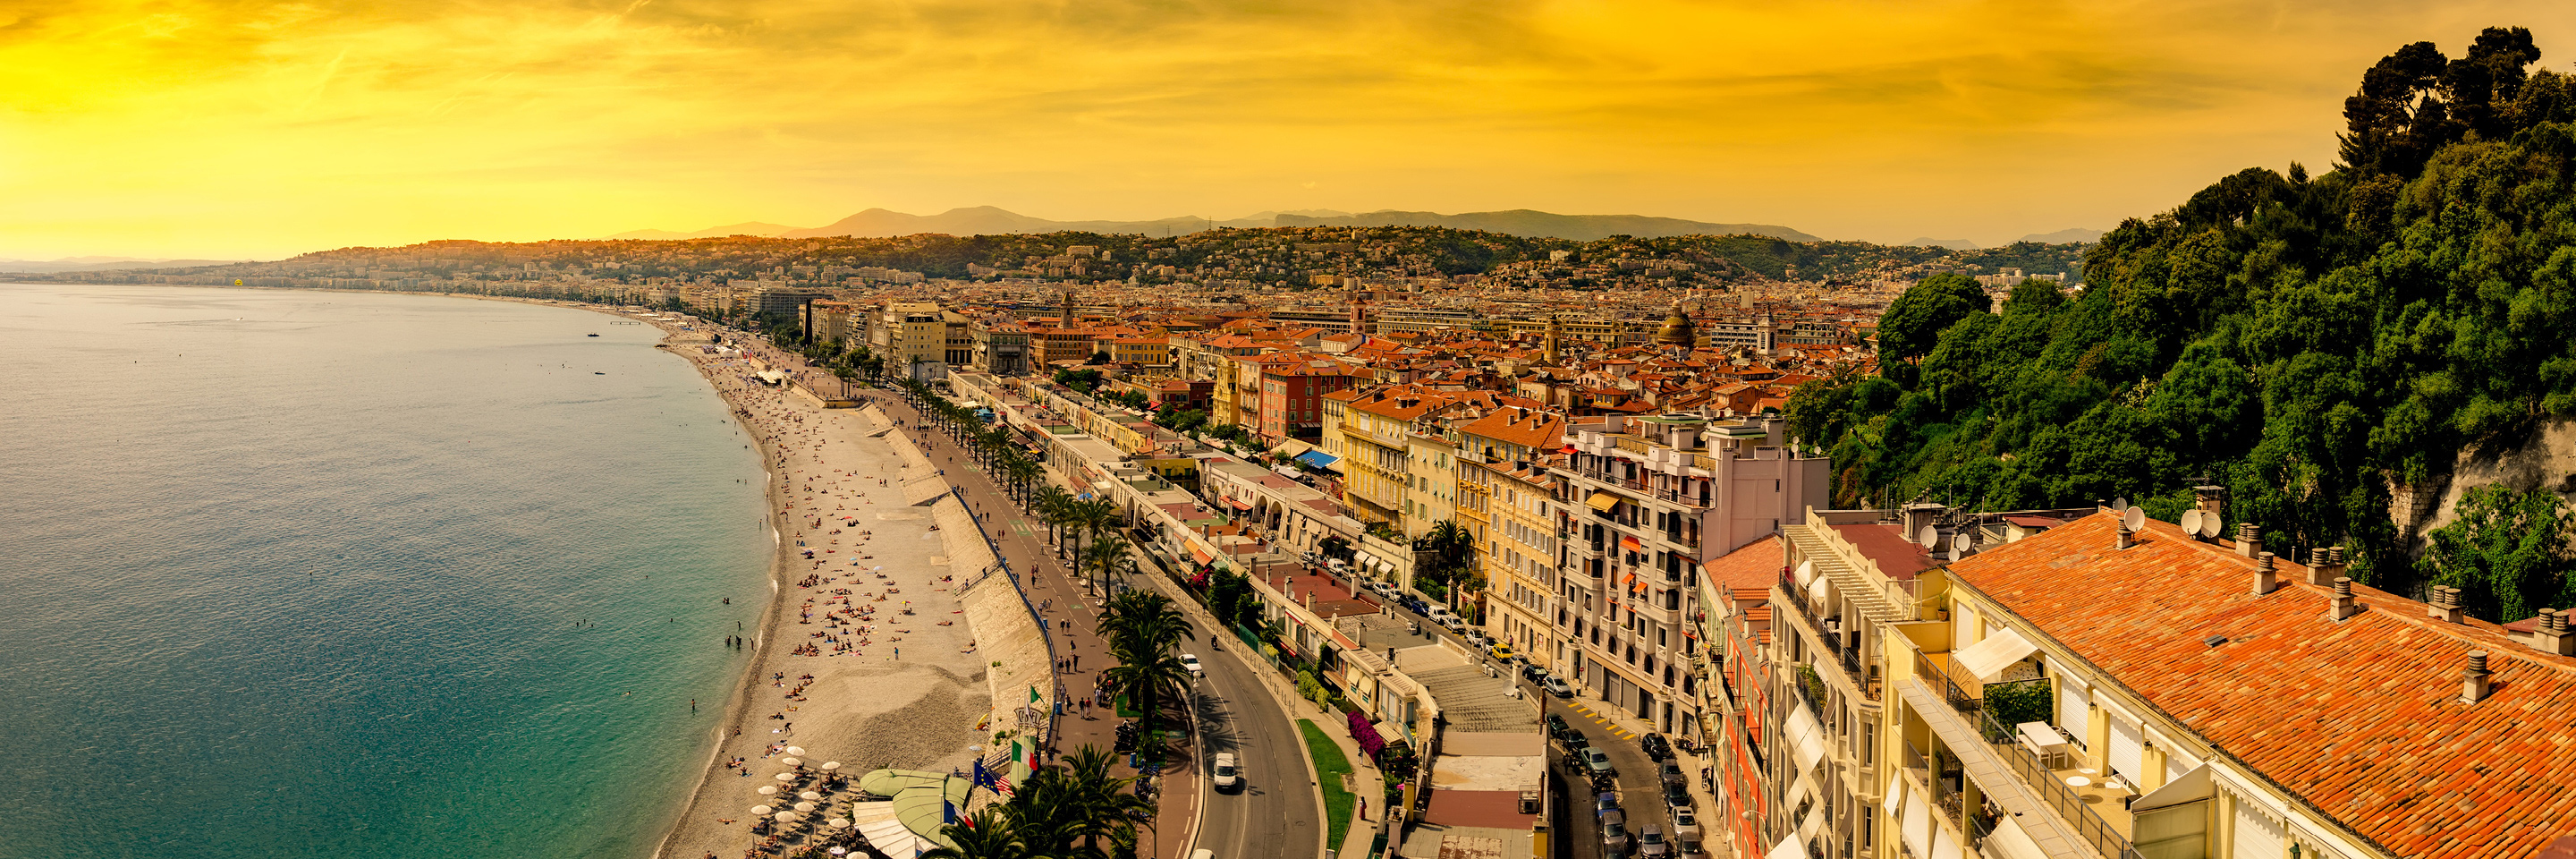 A Culinary Experience in Burgundy & Provence with 2 Nights in Aix-en-Provence & 2 Nights in Nice (Southbound)